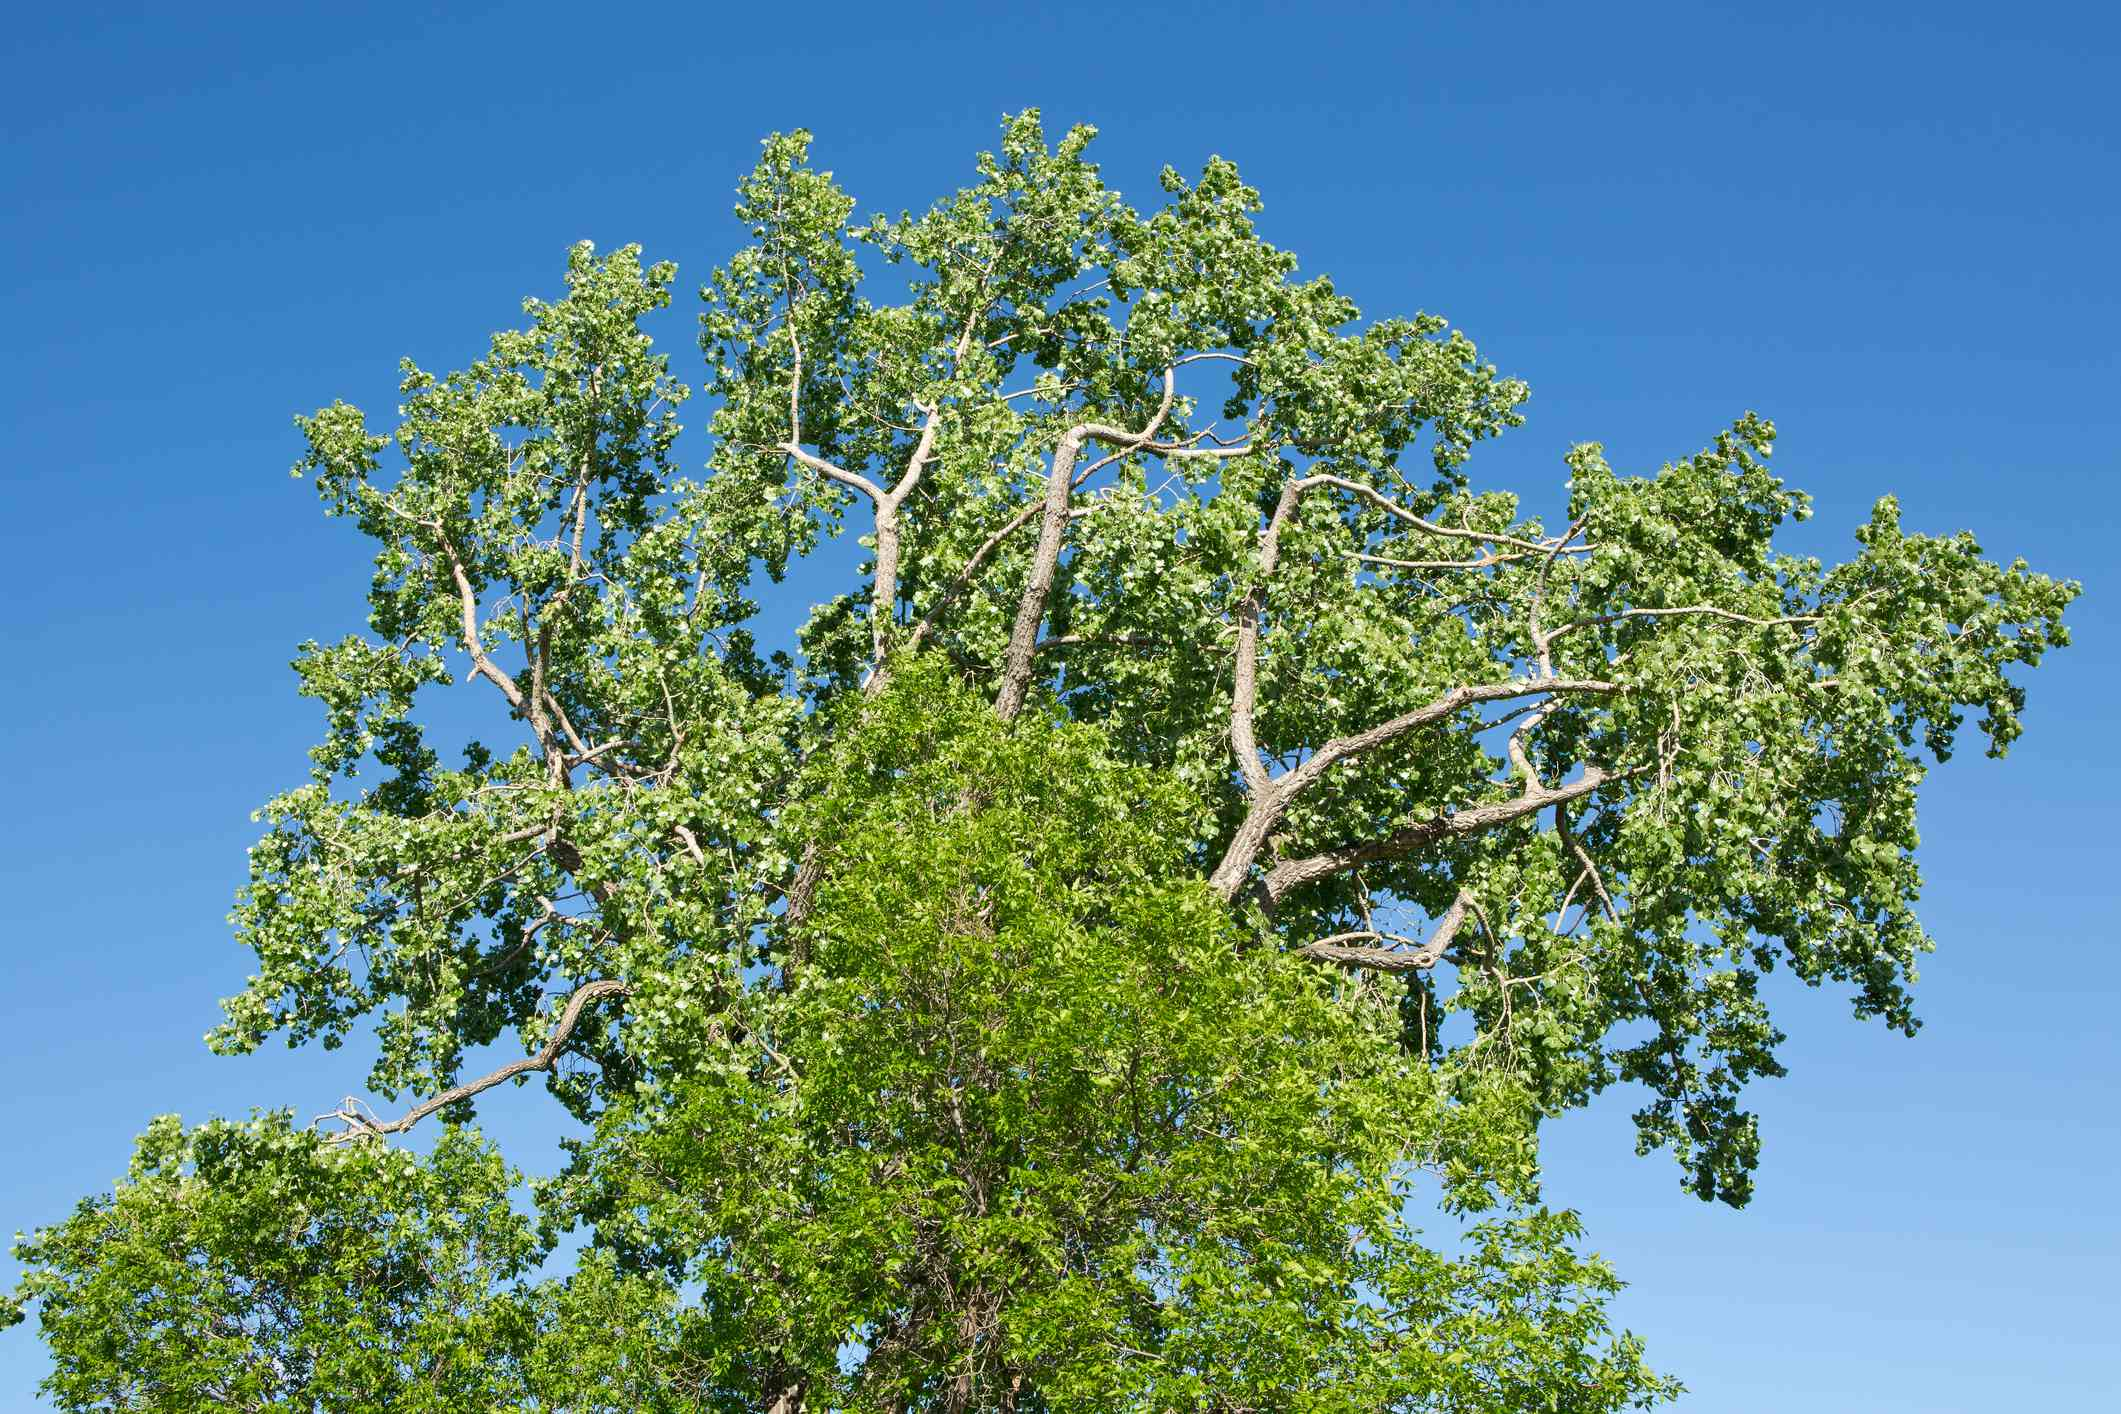 Green Ash tree canopy against a blue sky.